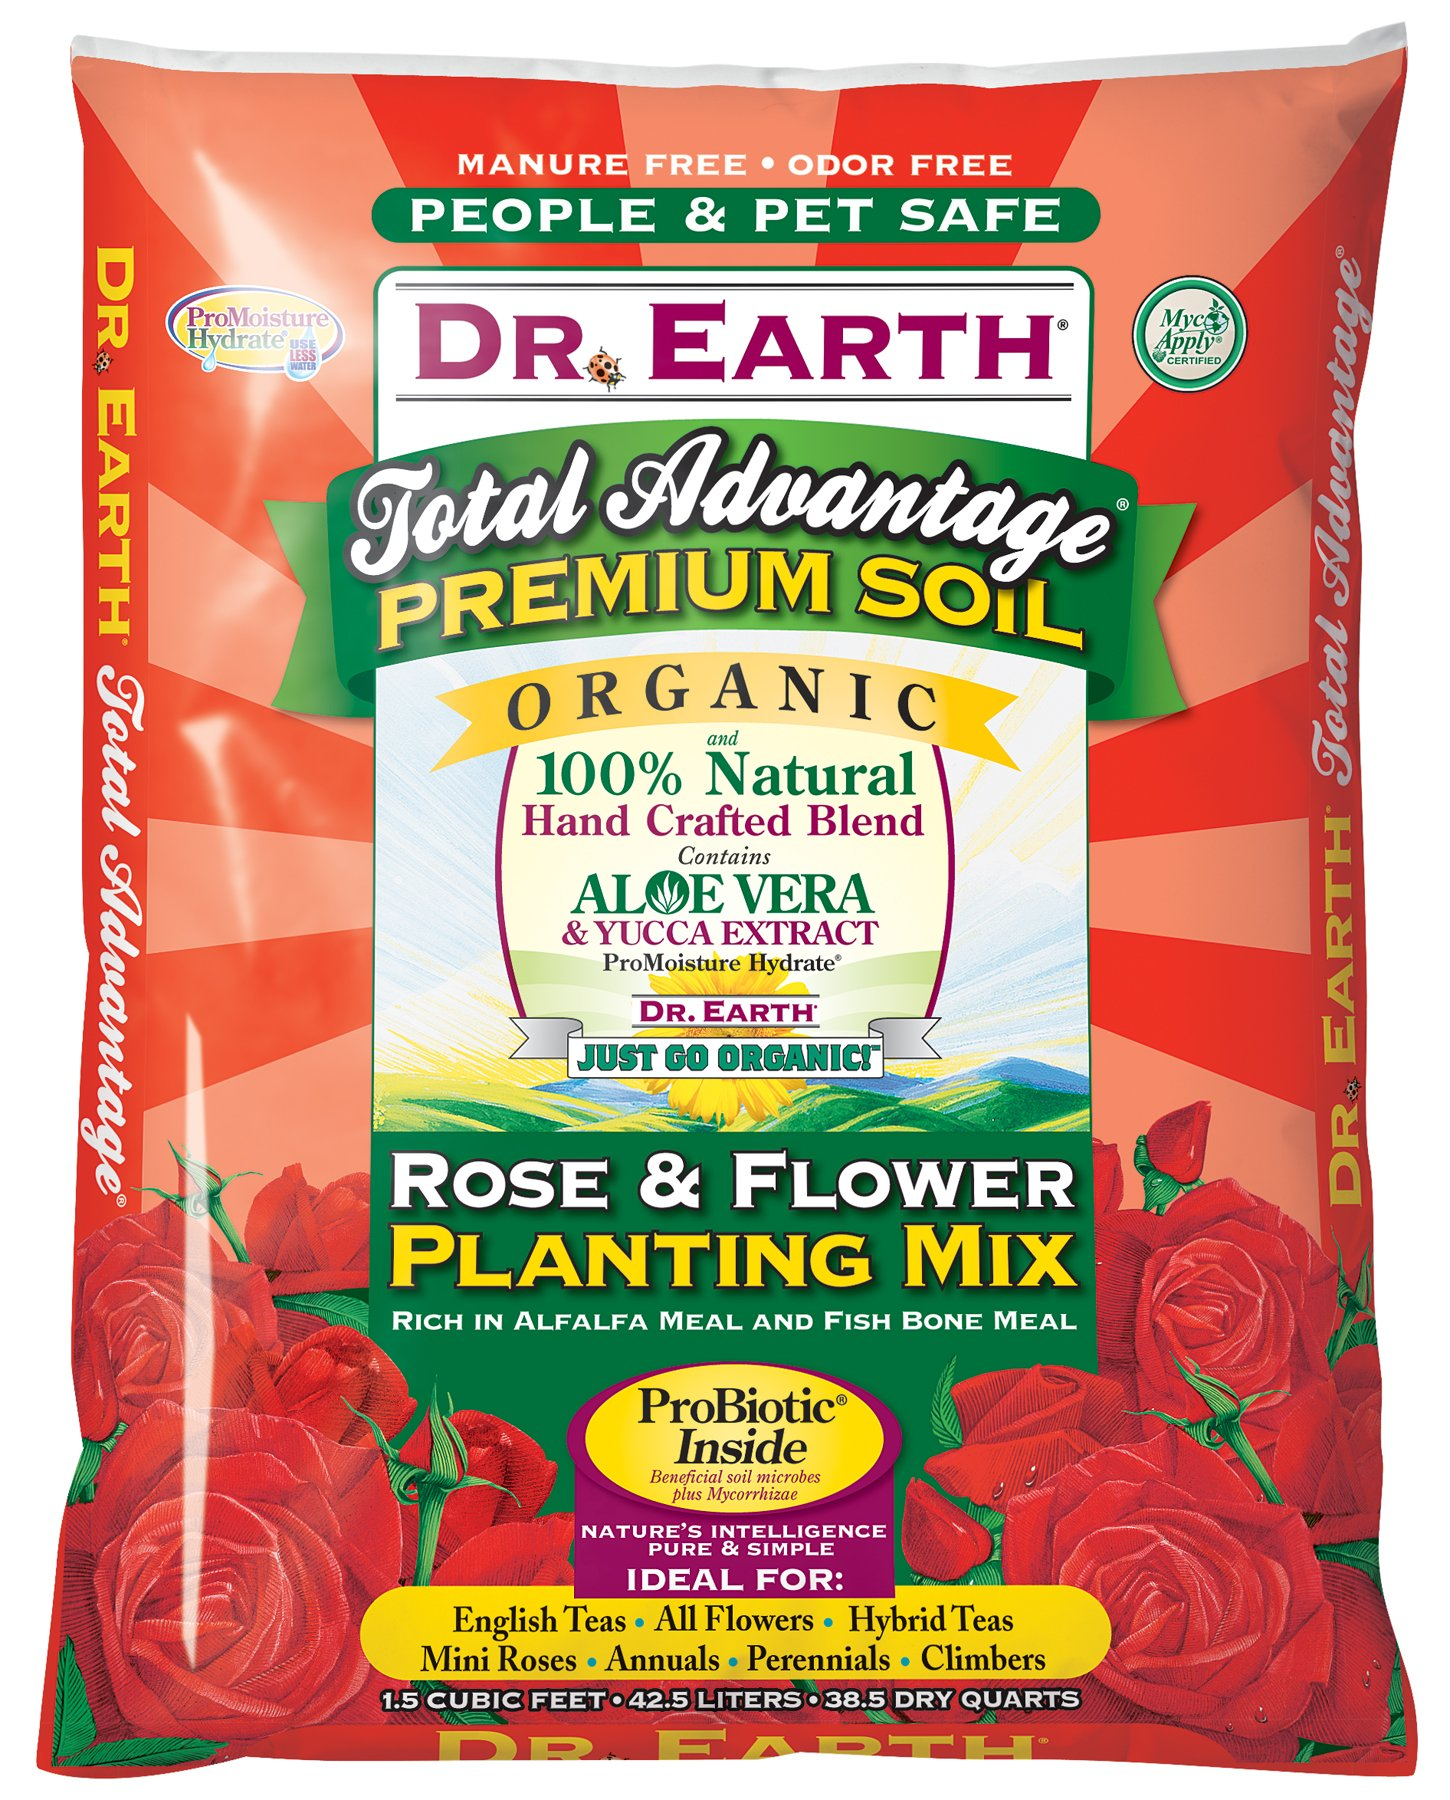 Dr. Earth 805 1-1/2 Cubic Feet Rose and Flower Planting Mix by Dr. Earth